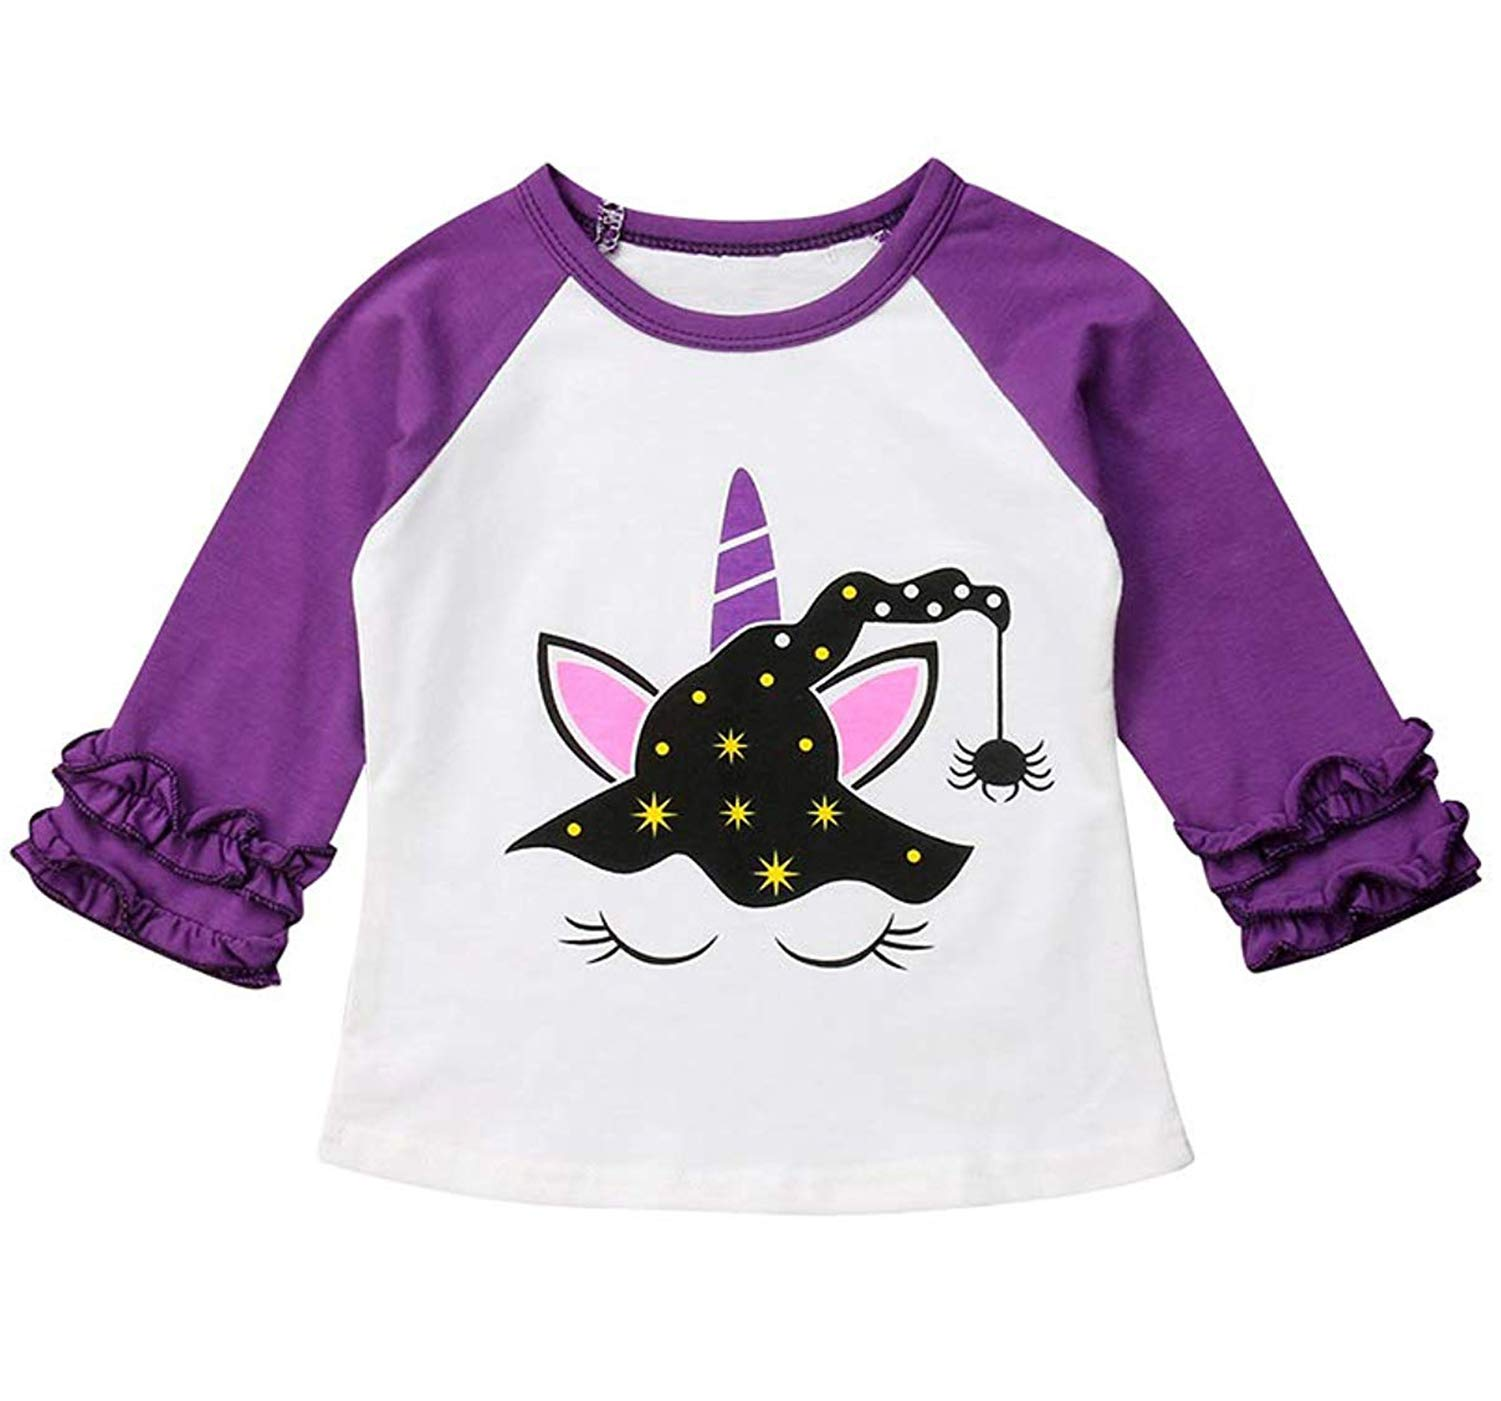 Toddler Kids Baby Girl Unicorn Pumpkin Ruffles Long Sleeve T-Shirt Tops Outfits